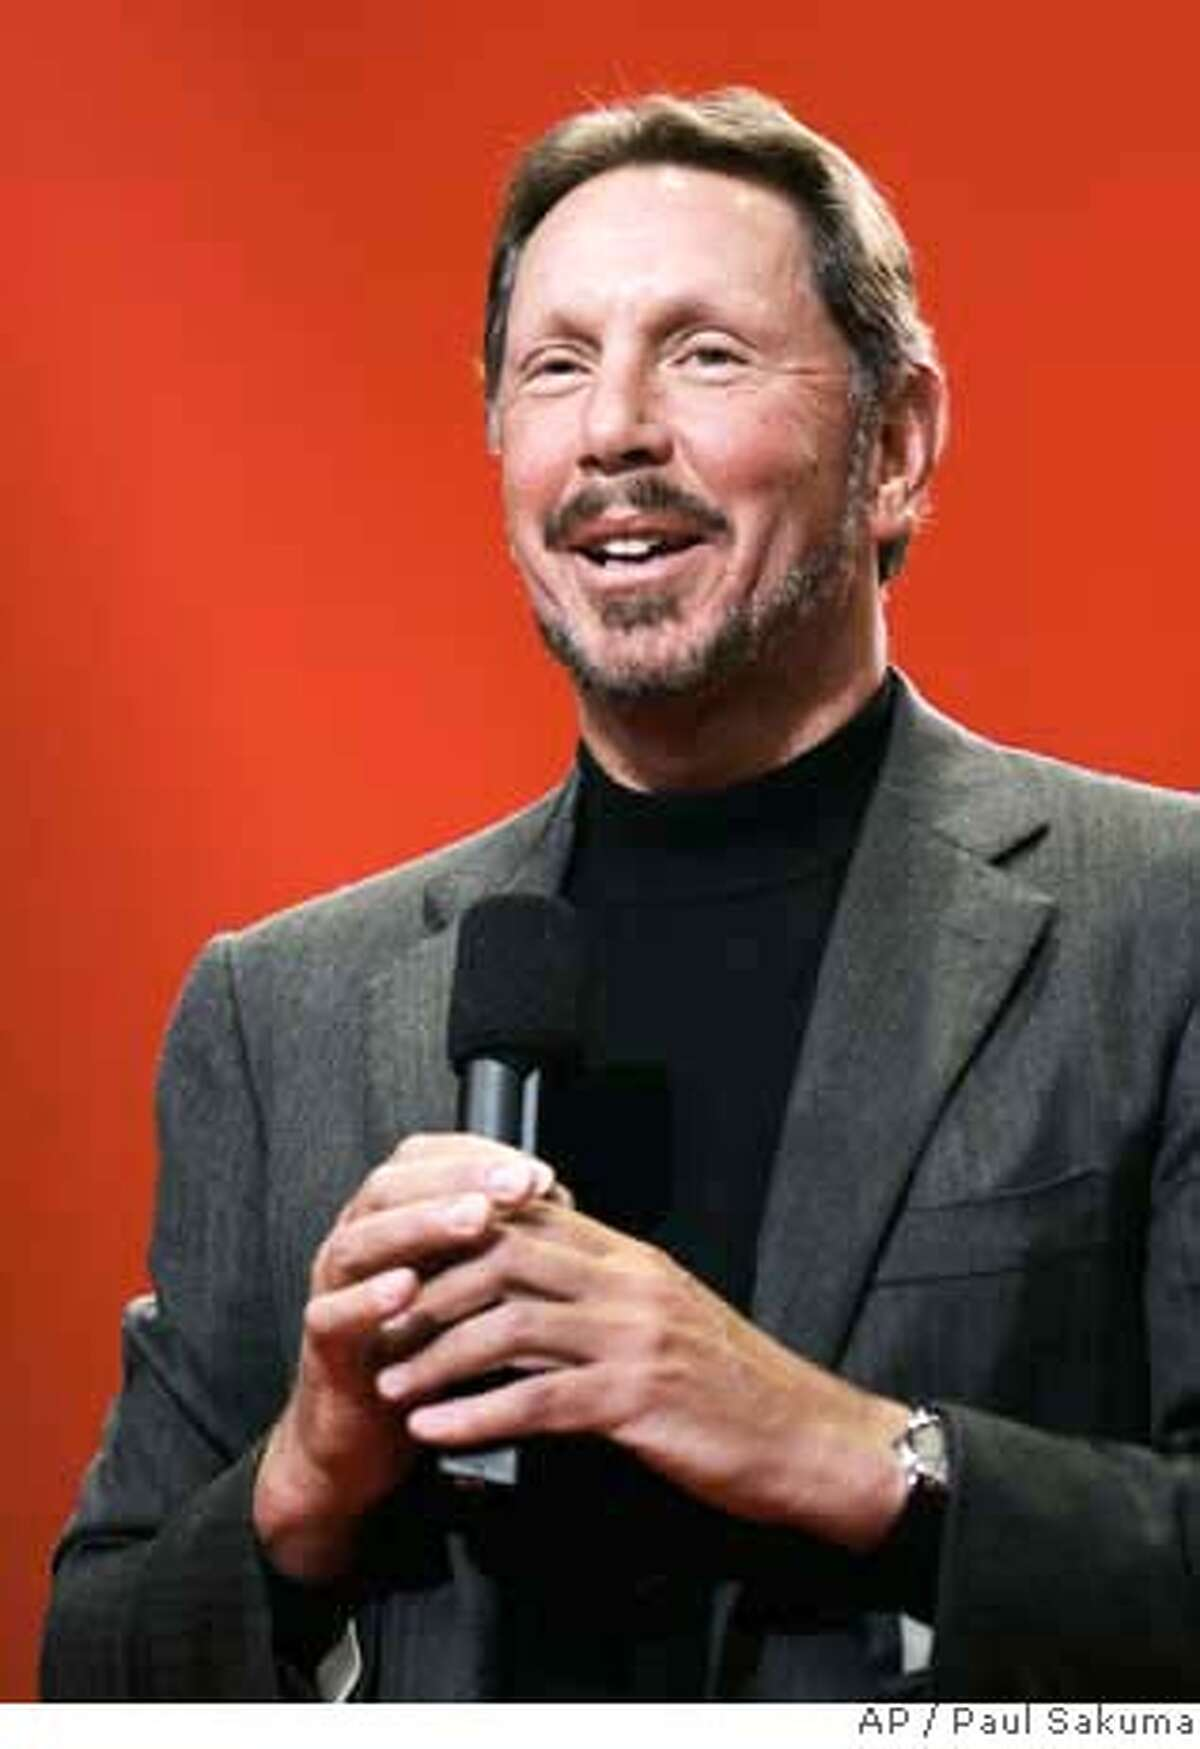 ###Live Caption:Oracle CEO Larry Ellison is the richest person in the Bay Area and ranks #14 nationally, according to Forbes.###Caption History:**HOLD FOR RELEASE UNTIL 6:01 p.m. EDT THURSDAY, SEPT. 20, 2007. THIS STORY MAY NOT BE PUBLISHED, BROADCAST OR POSTED ONLINE BEFORE 6:01 p.m. EDT THURSDAY** **FILE** Oracle CEO Larry Ellison smiles during his keynote address at Oracle Open World conference in San Francisco, in this Oct. 25, 2006 file photo. Forbes magazine releases its annual rankings of the nation's wealthiest individuals on Thursday, Sept. 20, 2007. (AP Photo/Paul Sakuma, file) Ran on: 09-21-2007 Larry Ellison Rank: 4 City: Woodside Wealth: $26 billion Ran on: 03-06-2008 Ellison###Notes:###Special Instructions:**HOLD FOR RELEASE UNTIL 6:01 P.M. EDT THURSDAY, SEPT. 20, 2007. THIS STORY MAY NOT BE PUBLISHED, BROADCAST OR POSTED ONLINE BEFORE 6:01 P.M. EDT THURSDAY** OCT. 25, 2006 FILE PHOTO